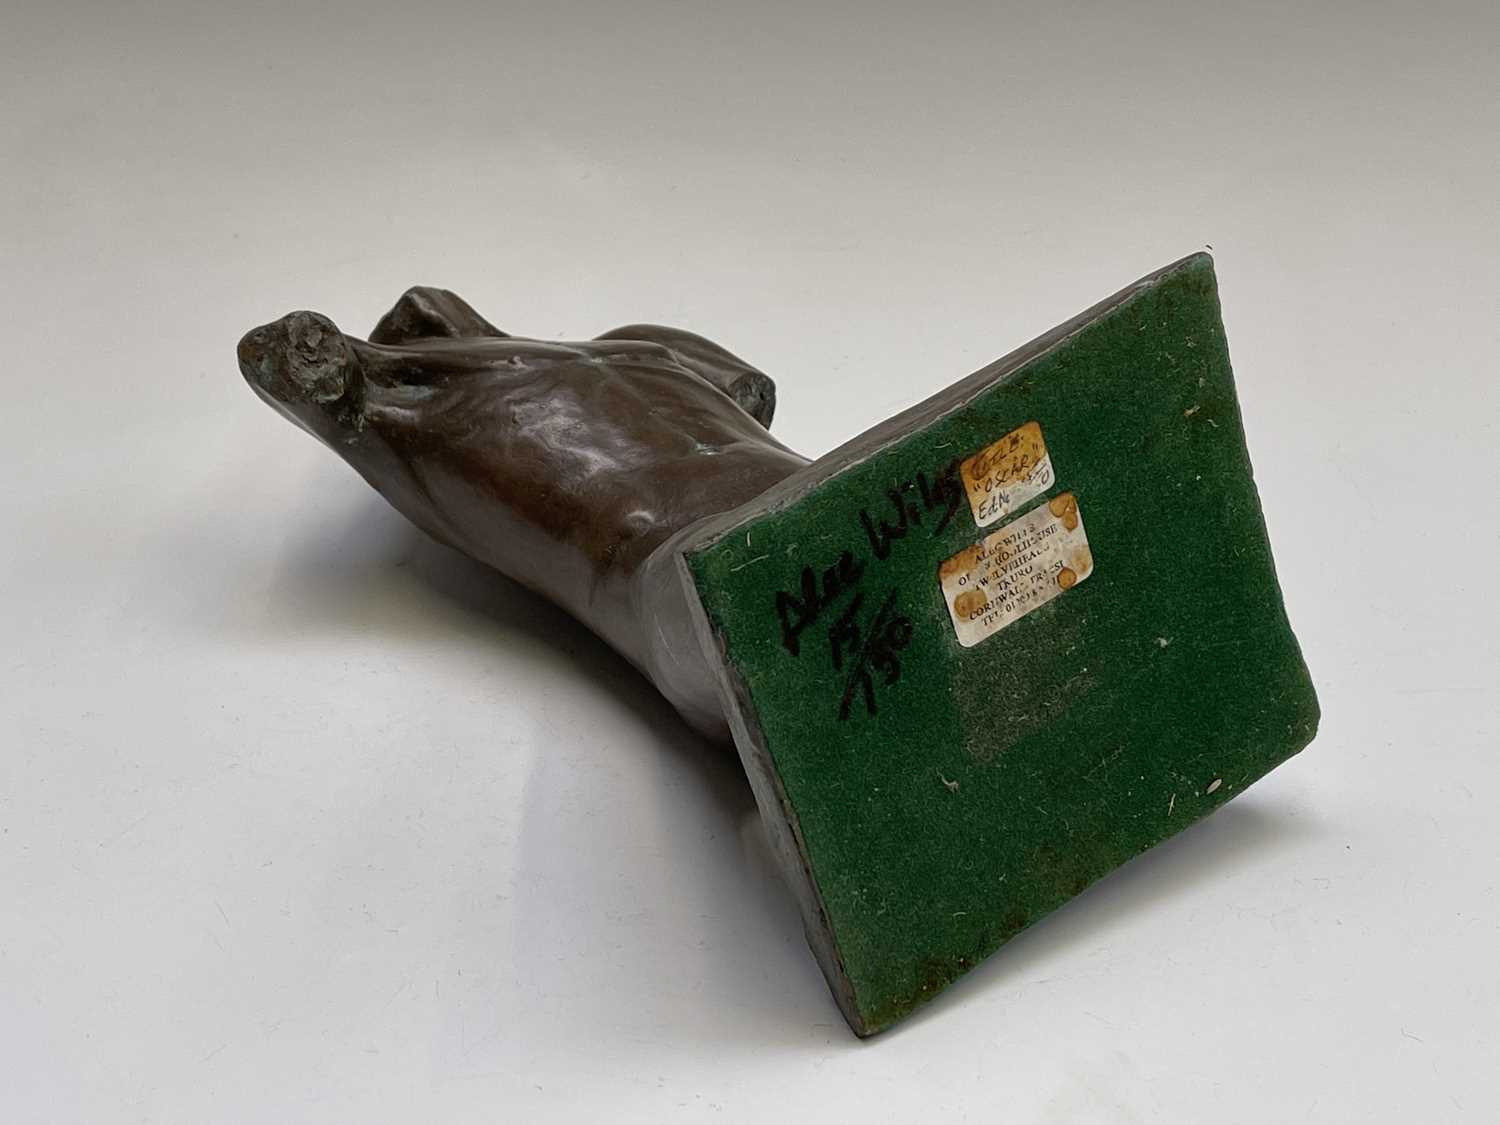 Alec WILES (1924)Males Torso Bronzed resin sculpture Signed and dated 1995Height 27cm - Image 9 of 10